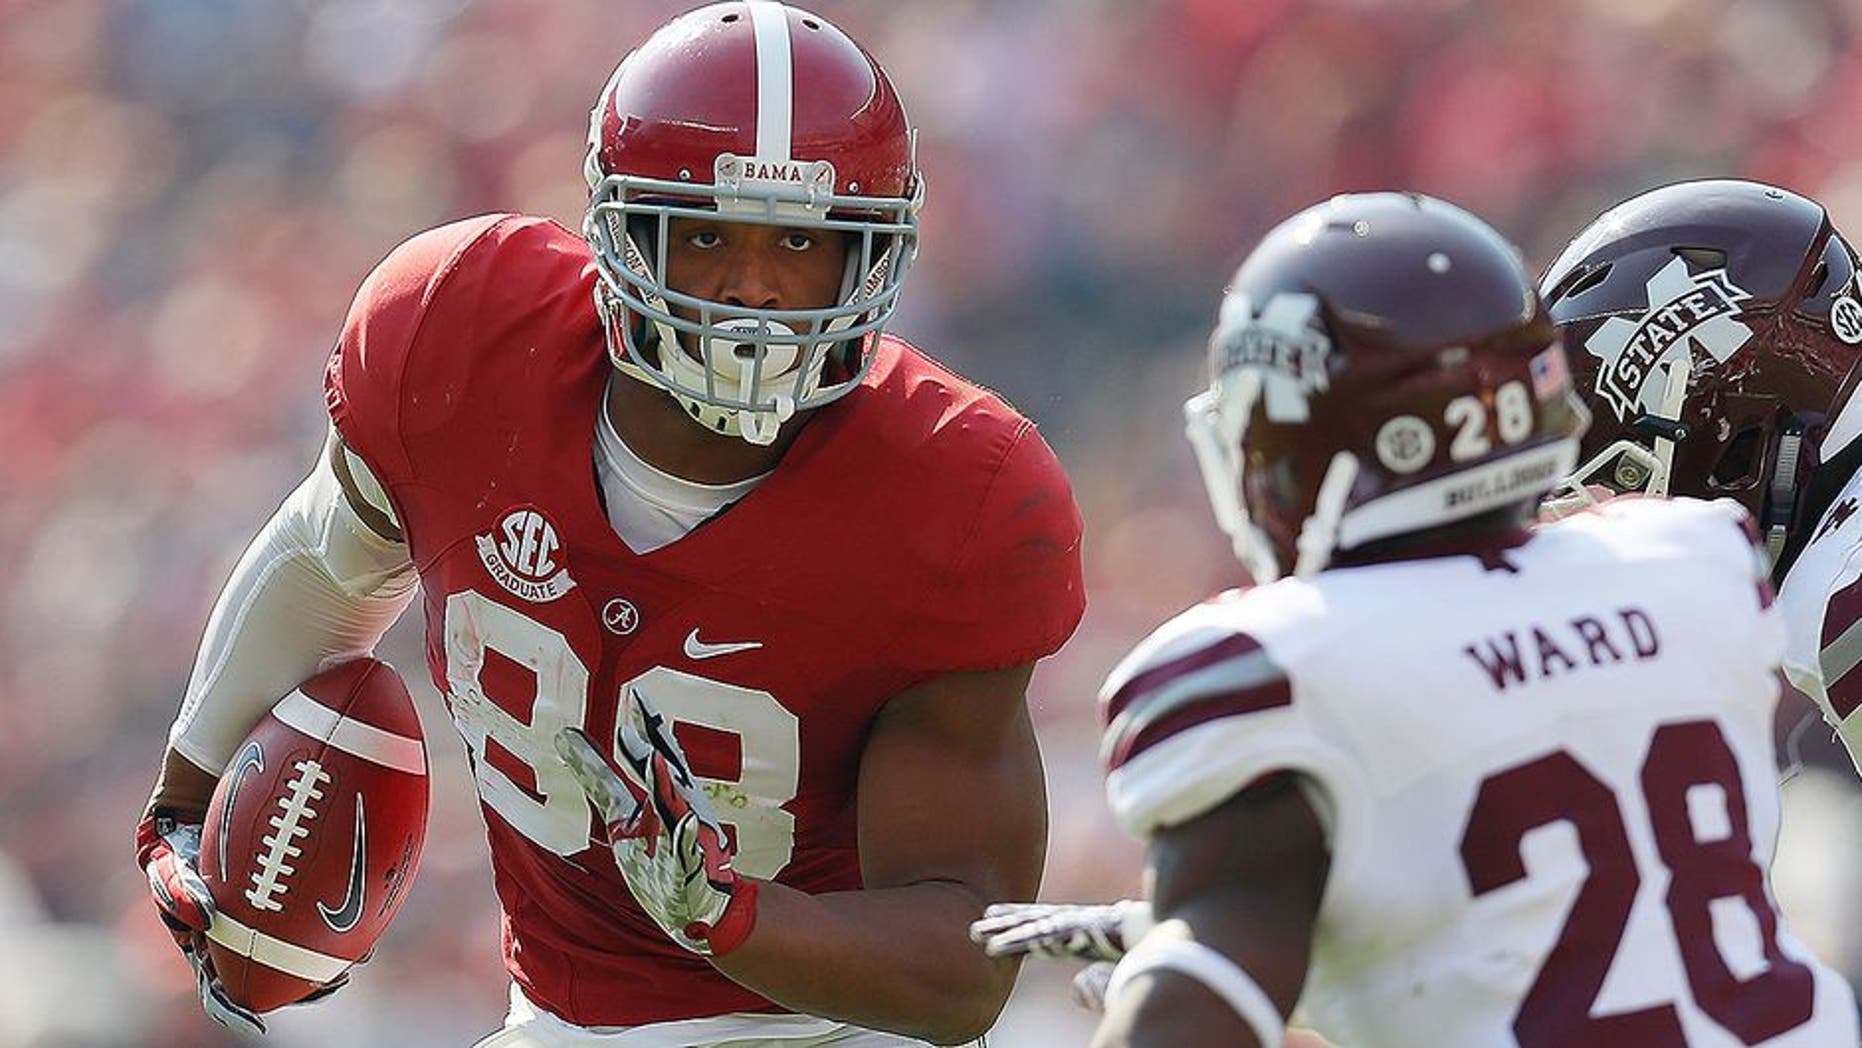 TUSCALOOSA, AL - NOVEMBER 12: O.J. Howard #88 of the Alabama Crimson Tide turns up this reception against DeAndre Ward #28 and Dezmond Harris #46 of the Mississippi State Bulldogs at Bryant-Denny Stadium on November 12, 2016 in Tuscaloosa, Alabama. (Photo by Kevin C. Cox/Getty Images)